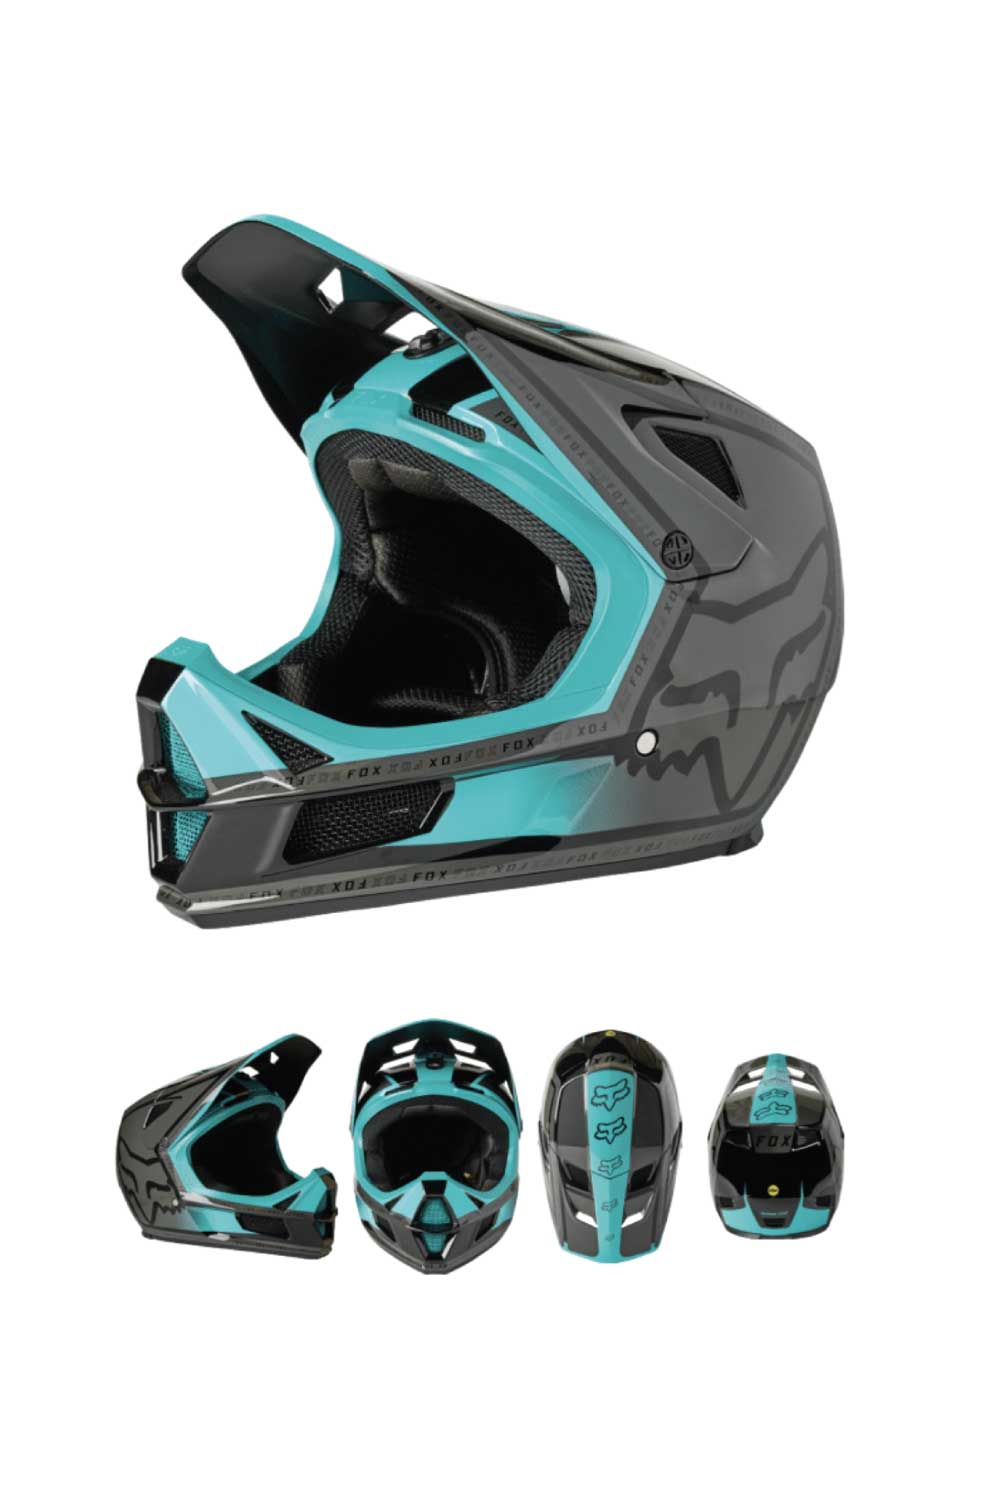 FOX Racing 2021 Rampage Comp MTB MIPS Bike Helmet